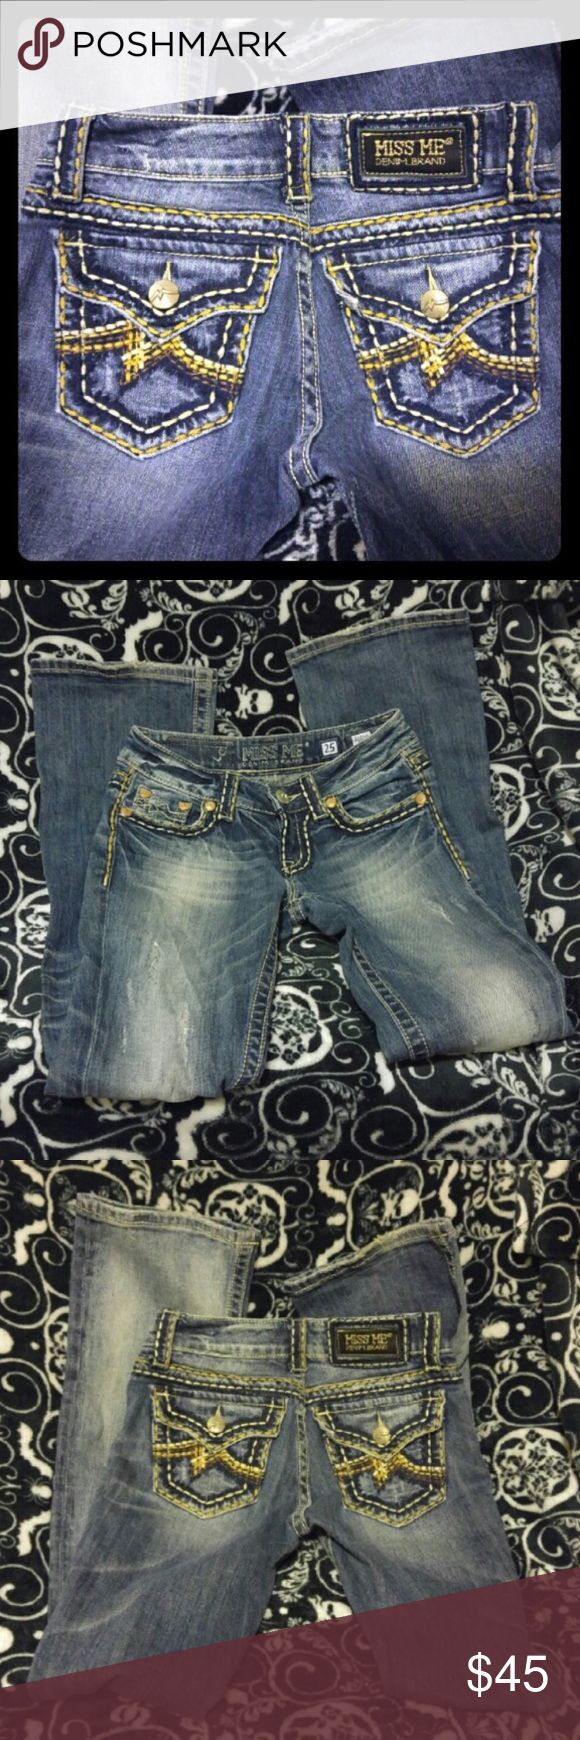 Miss Me Jeans 😍 In excellent condition and gorgeous!! From the Buckle store- Miss Me Irene Boot cut Women's Premium Designer Bootcut Jeans in size 25 with an inseam of 31. 😍😍 Miss Me Jeans Boot Cut